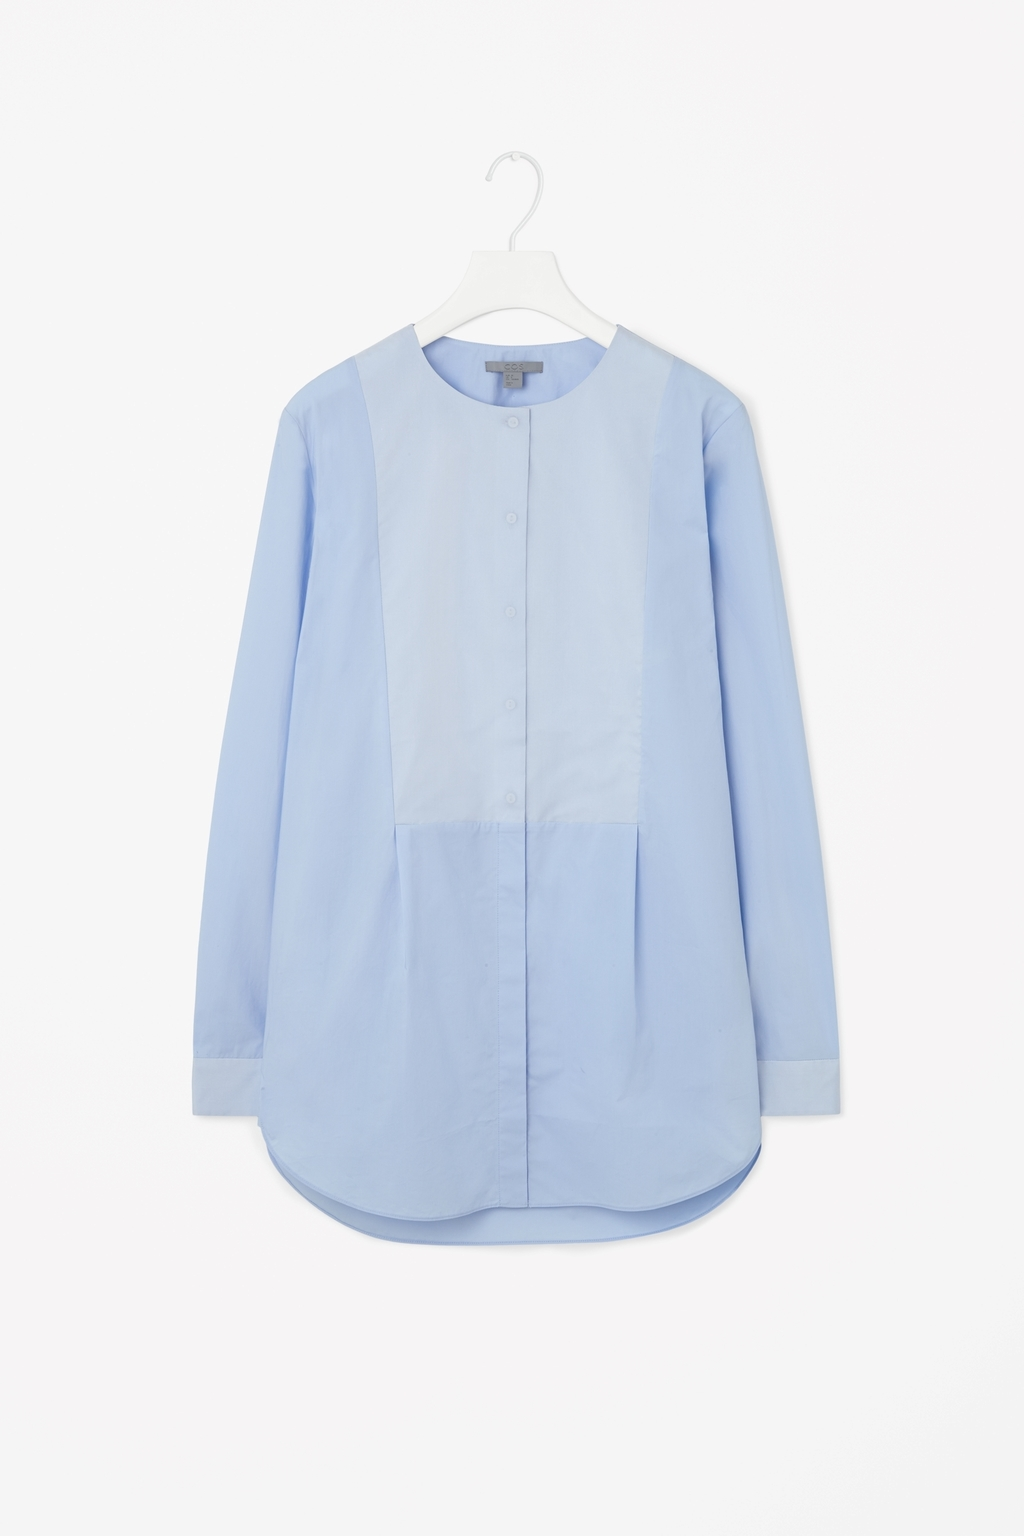 Silk Panel Shirt - neckline: round neck; pattern: plain; style: blouse; predominant colour: pale blue; occasions: casual, creative work; length: standard; fibres: silk - 100%; fit: straight cut; sleeve length: long sleeve; sleeve style: standard; texture group: silky - light; pattern type: fabric; season: s/s 2015; wardrobe: highlight